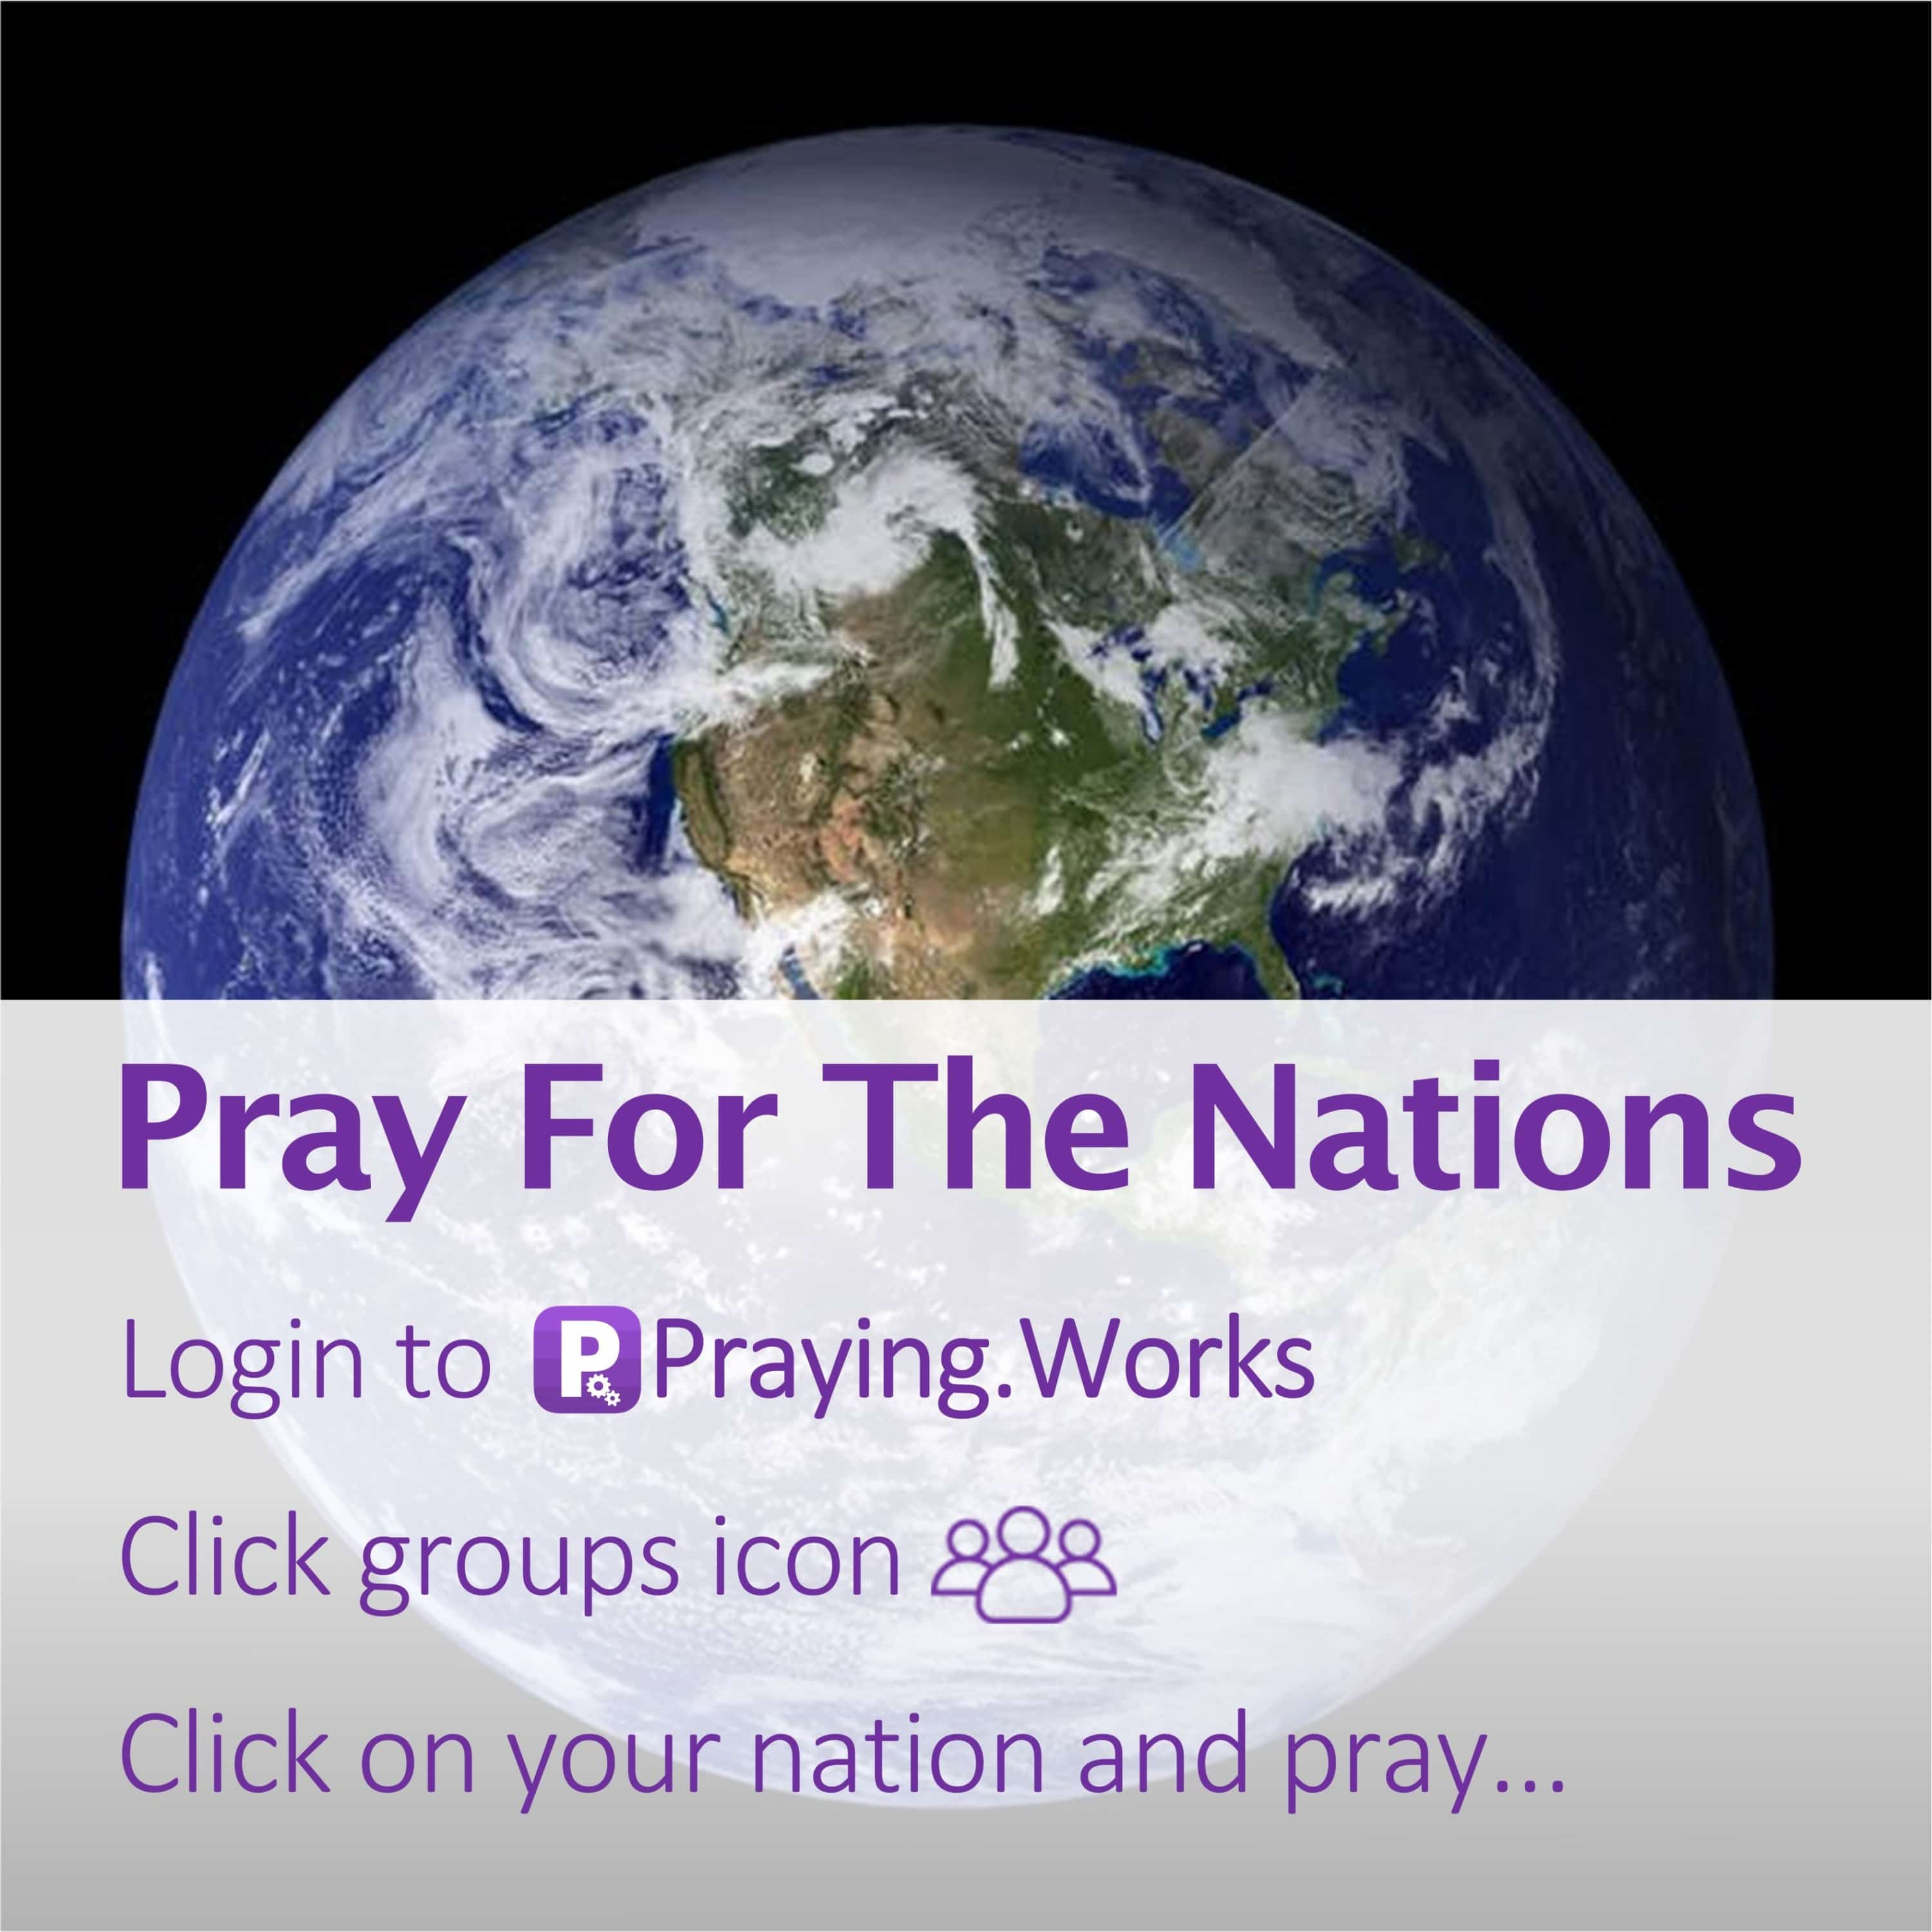 Pray for the Nations, alwayspray, amen, awakening, believe, bible, biblestudy, blessed, ChristConciousness, christianblog, Church, divineguidance, faith, god, GodBlessYou, GodFirst, GodsMotivation, grace, HolySpirit, Jesus, JesusKingLord, jesussaves, meditation, mercy, nations, prayer, PrayerAcrossTheNations, PrayForTheWorld, PrayingNations, salvation, scripture, spirituality, wecandoit